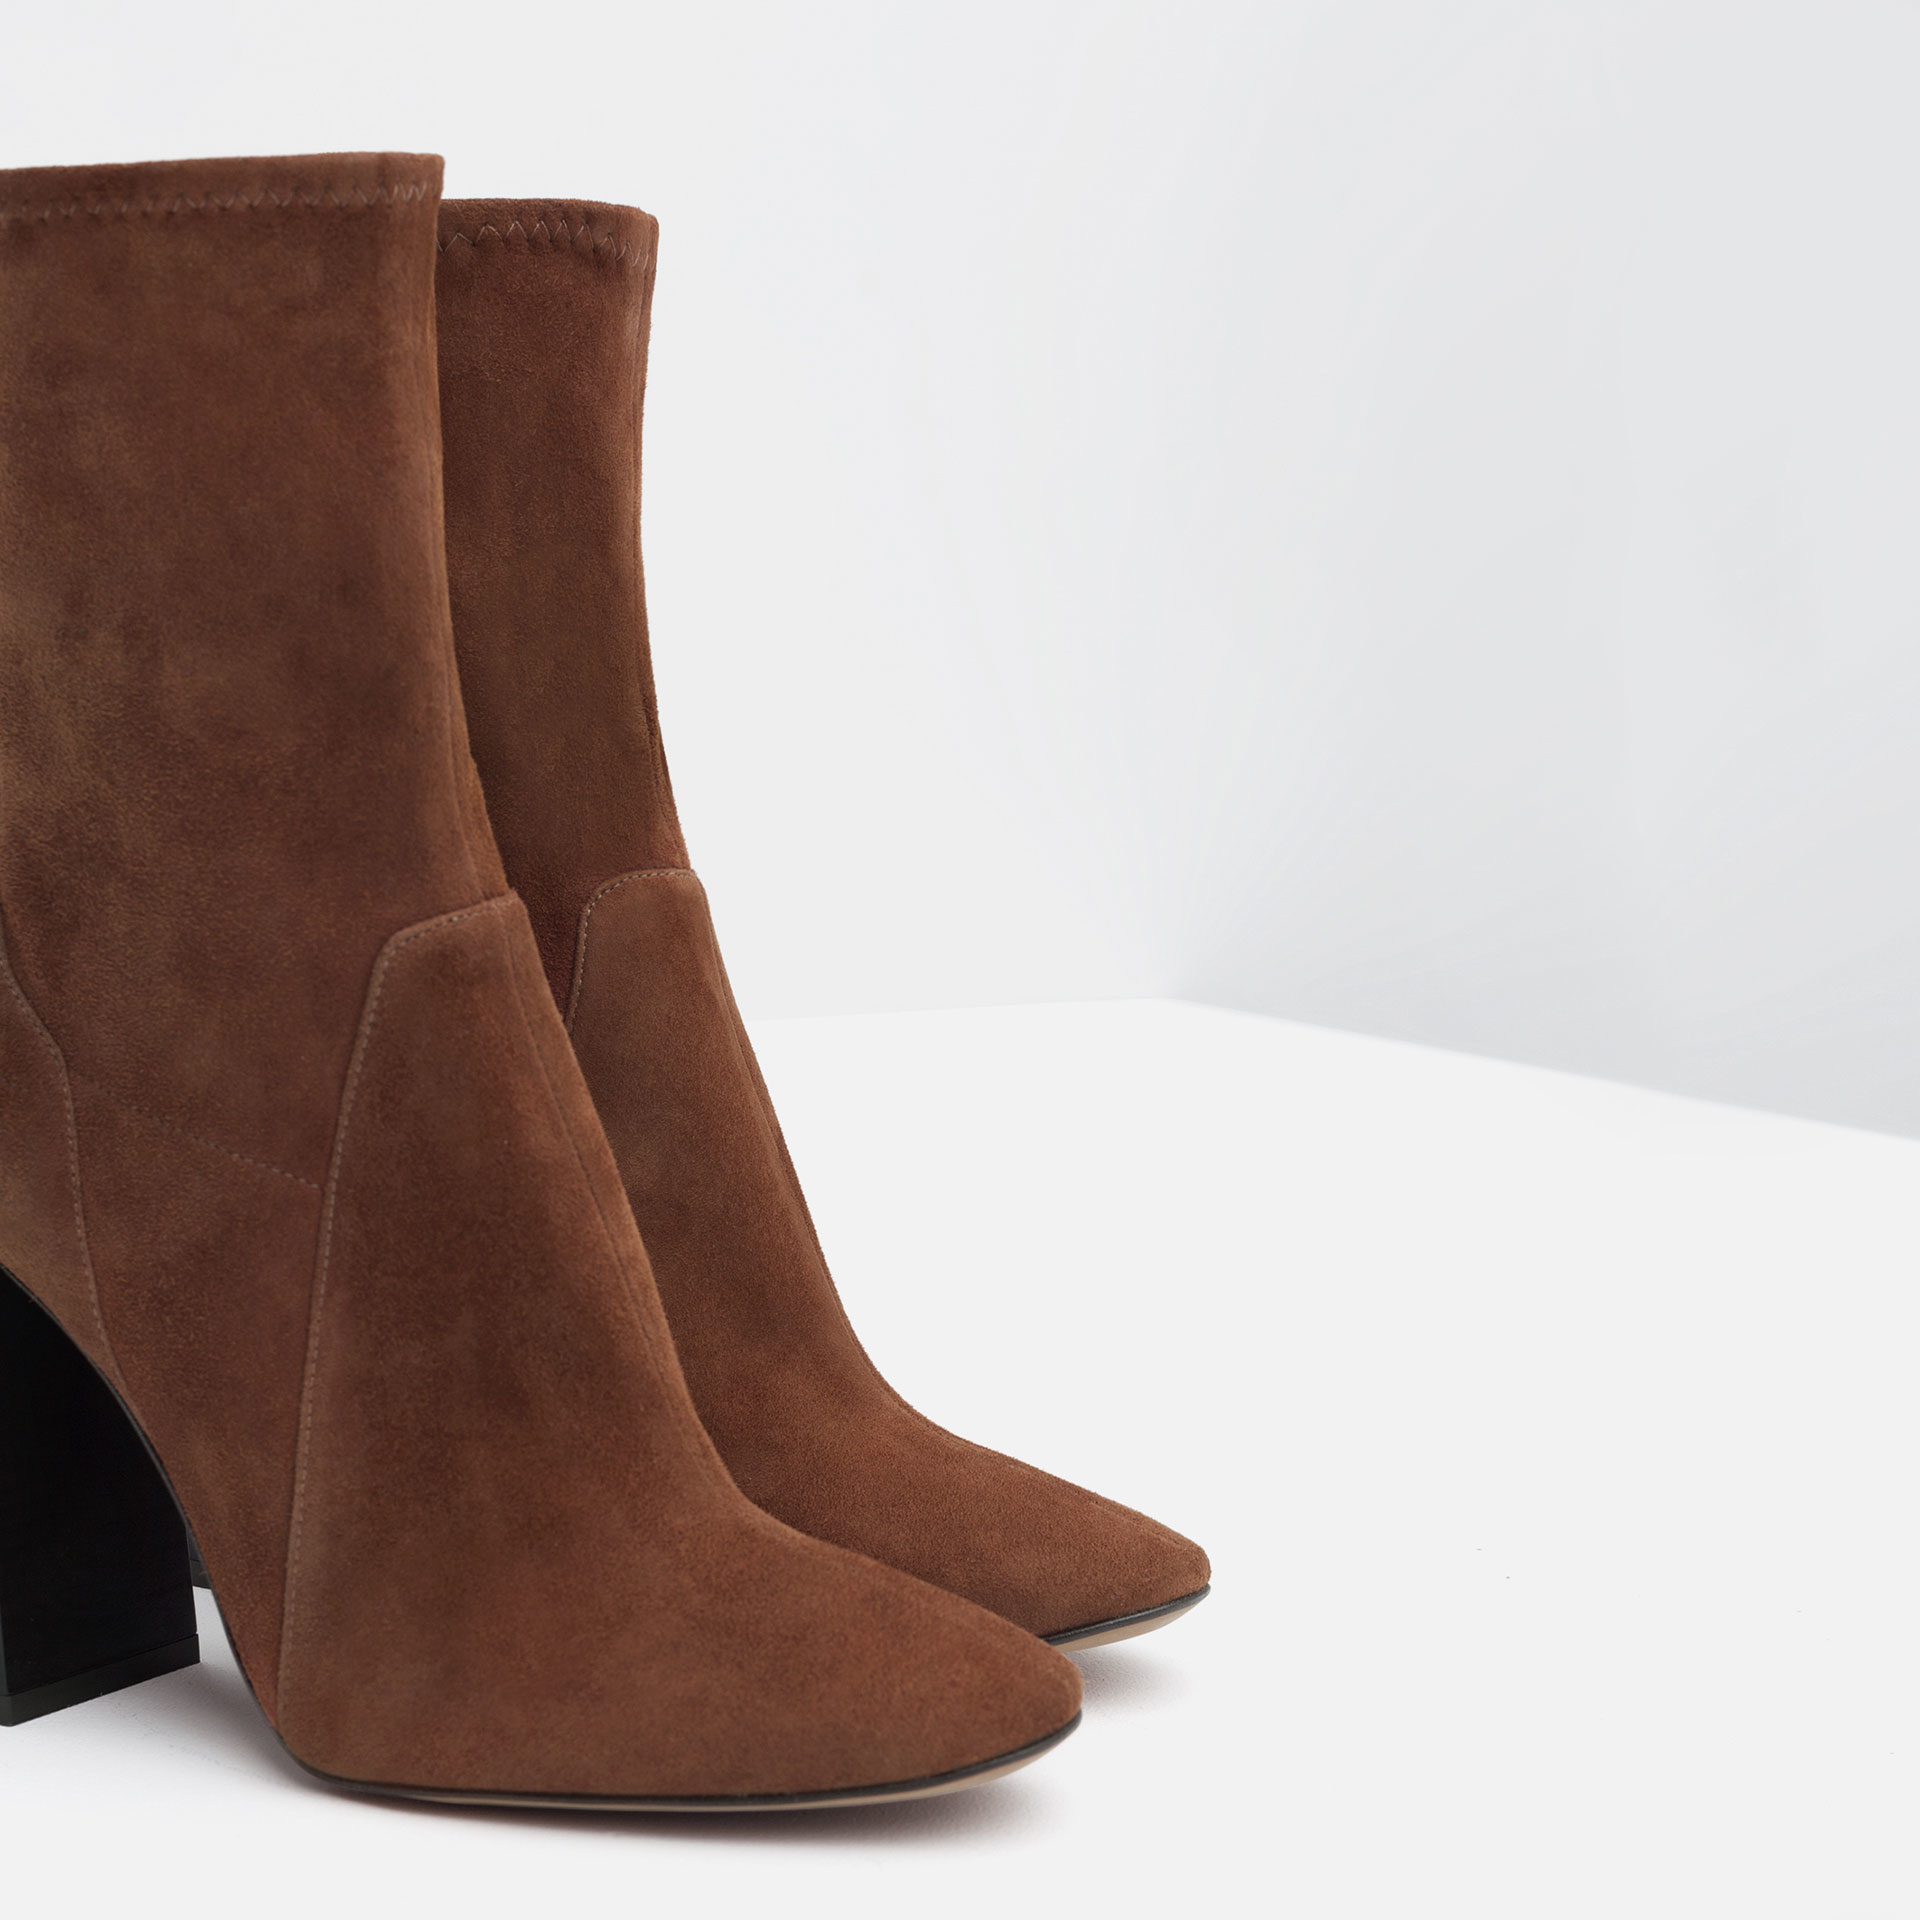 Zara High Heel Suede Ankle Boots in Brown | Lyst